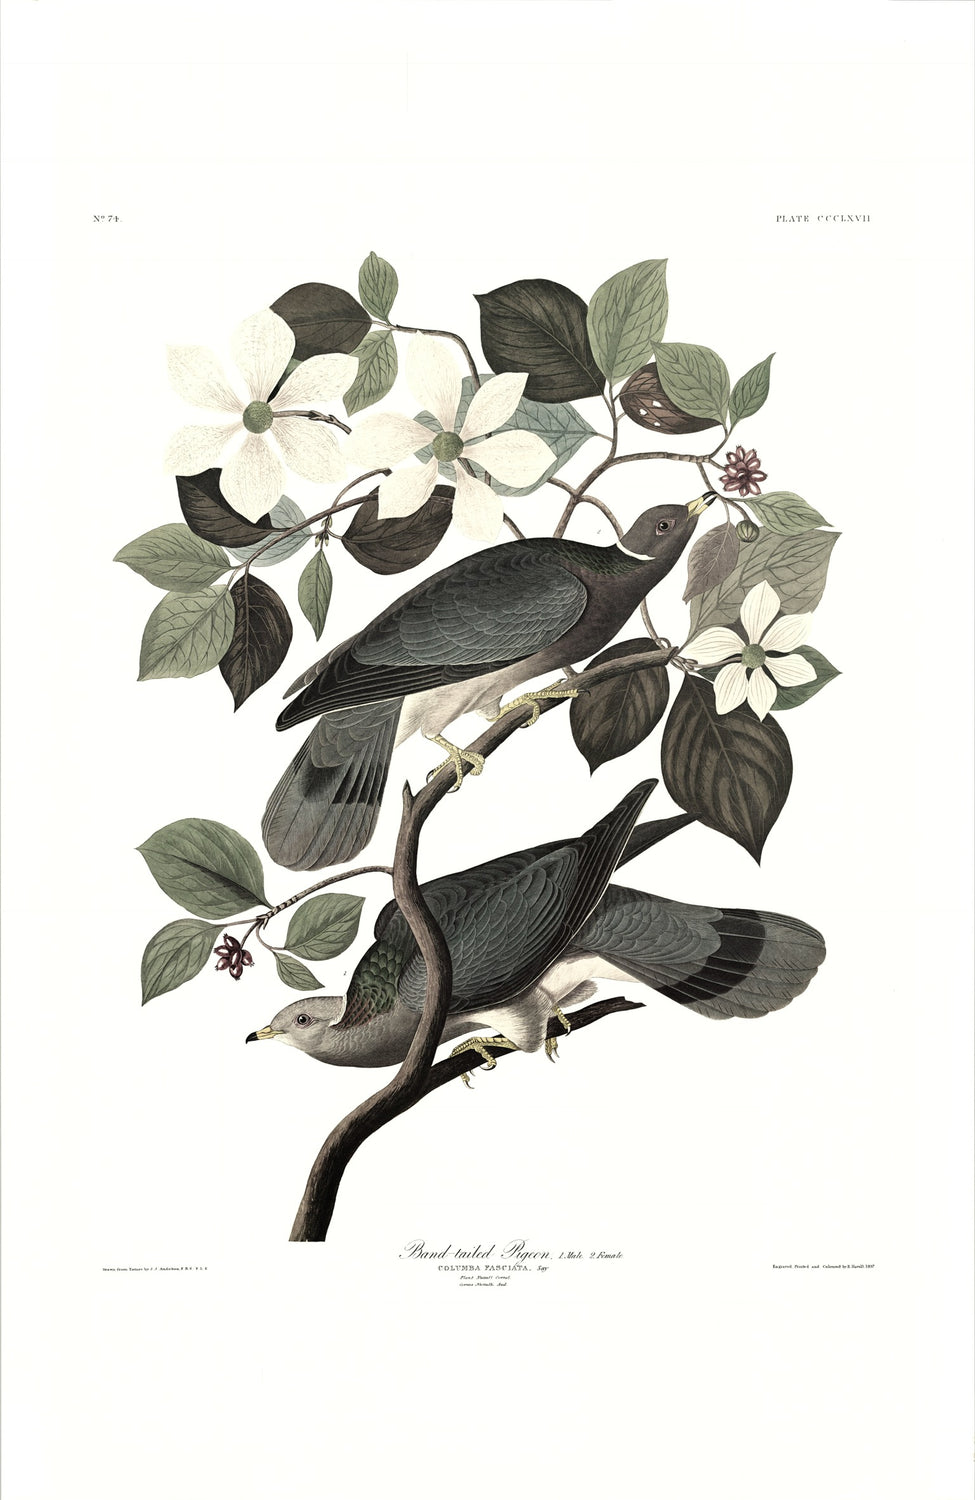 Band-tailed Pigeon Audubon Print. Princeton Audubon. World's only direct camera edition of this image.